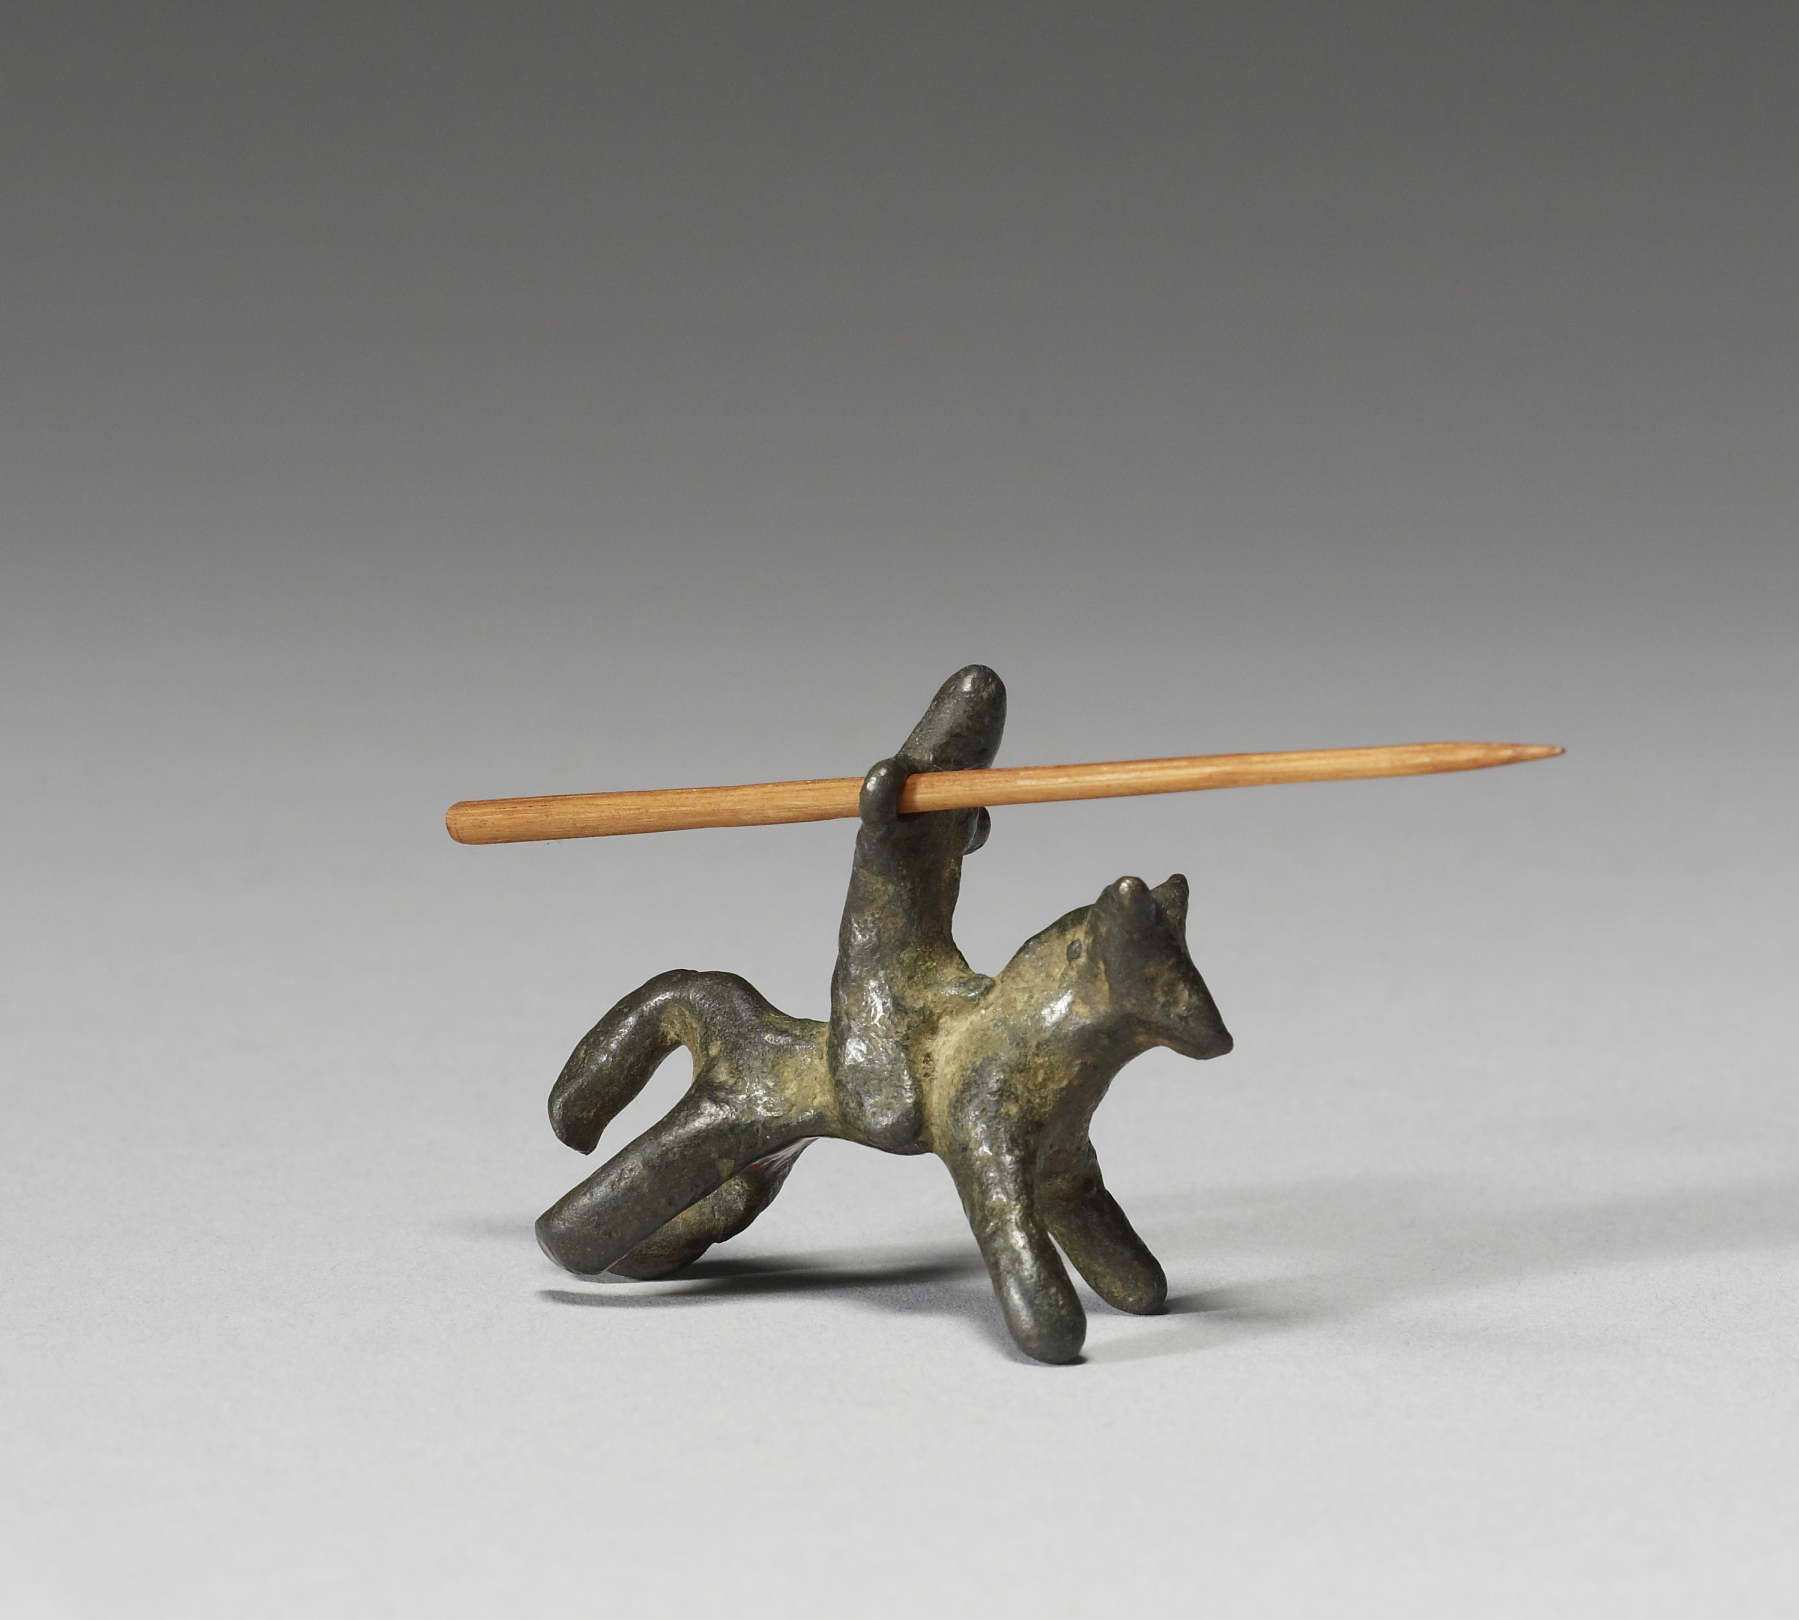 13th century bronze toy knight